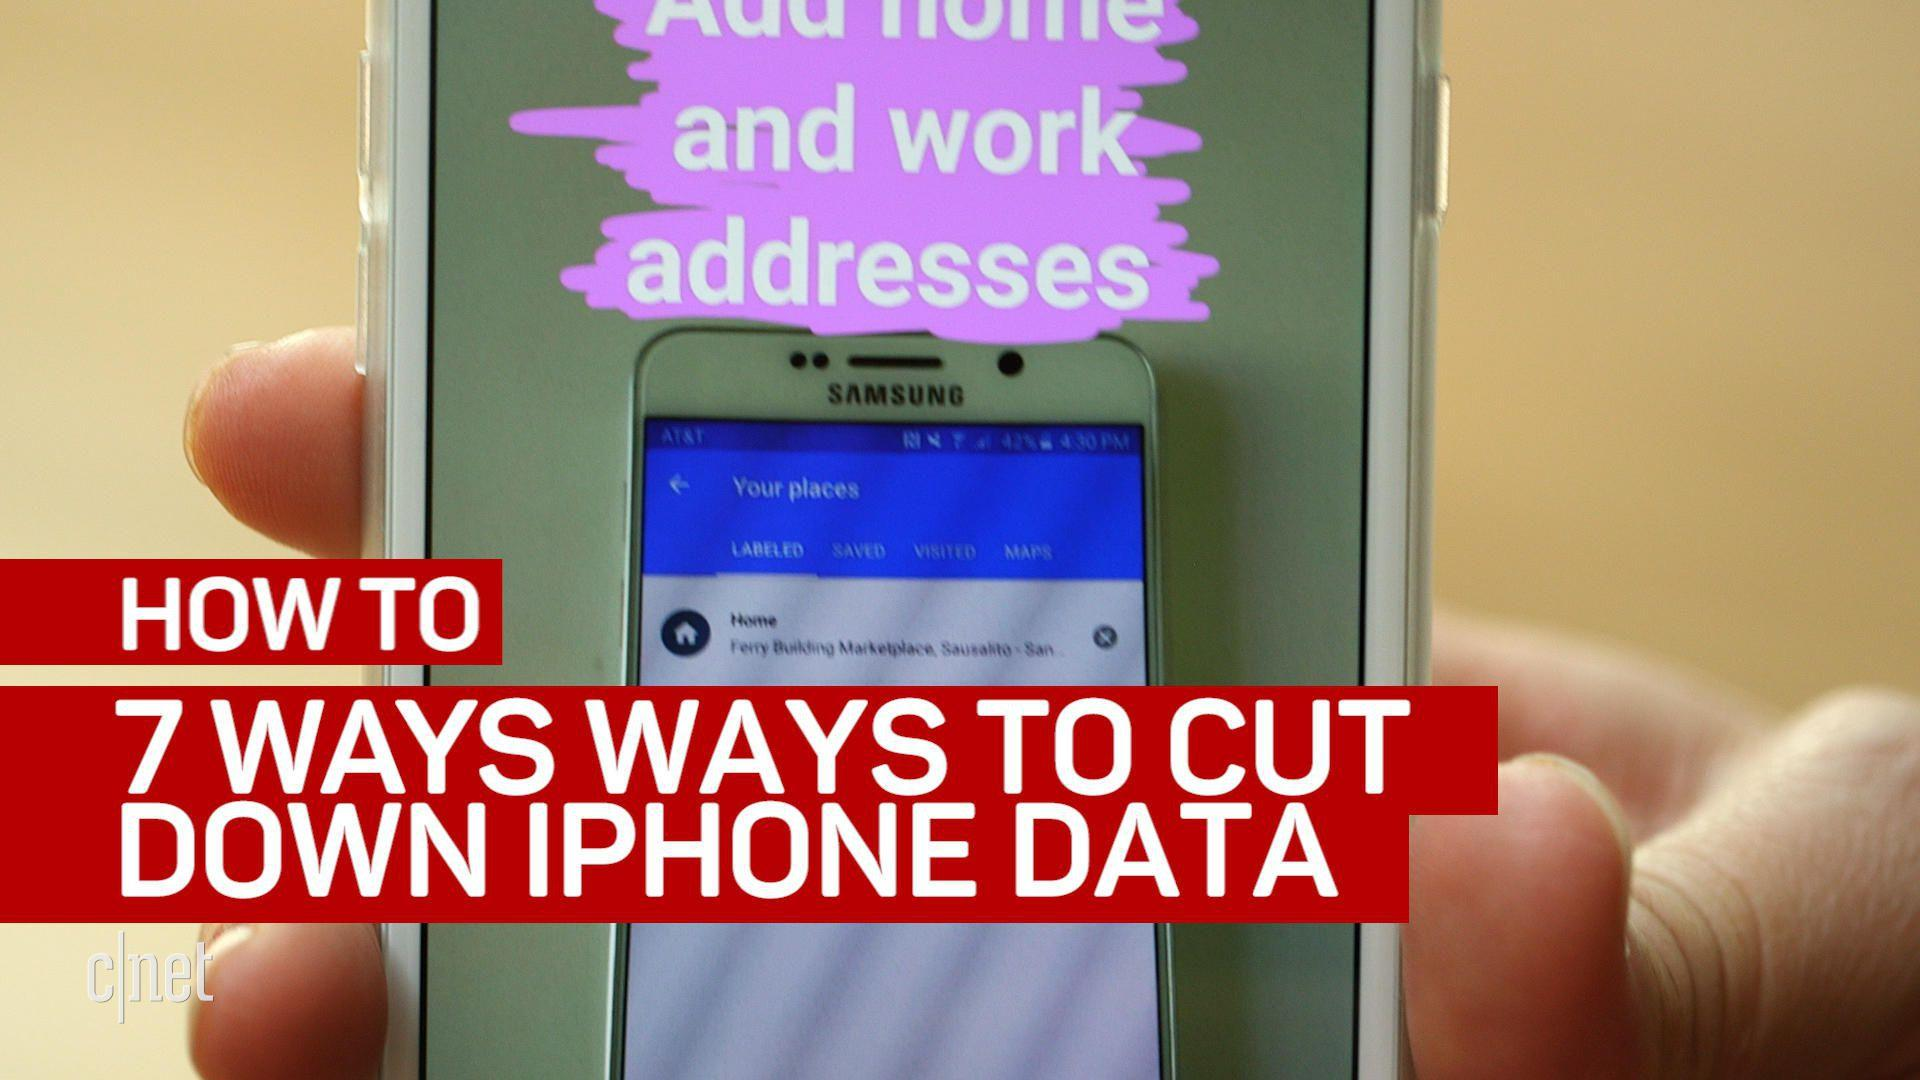 7 ways to cut down iPhone data